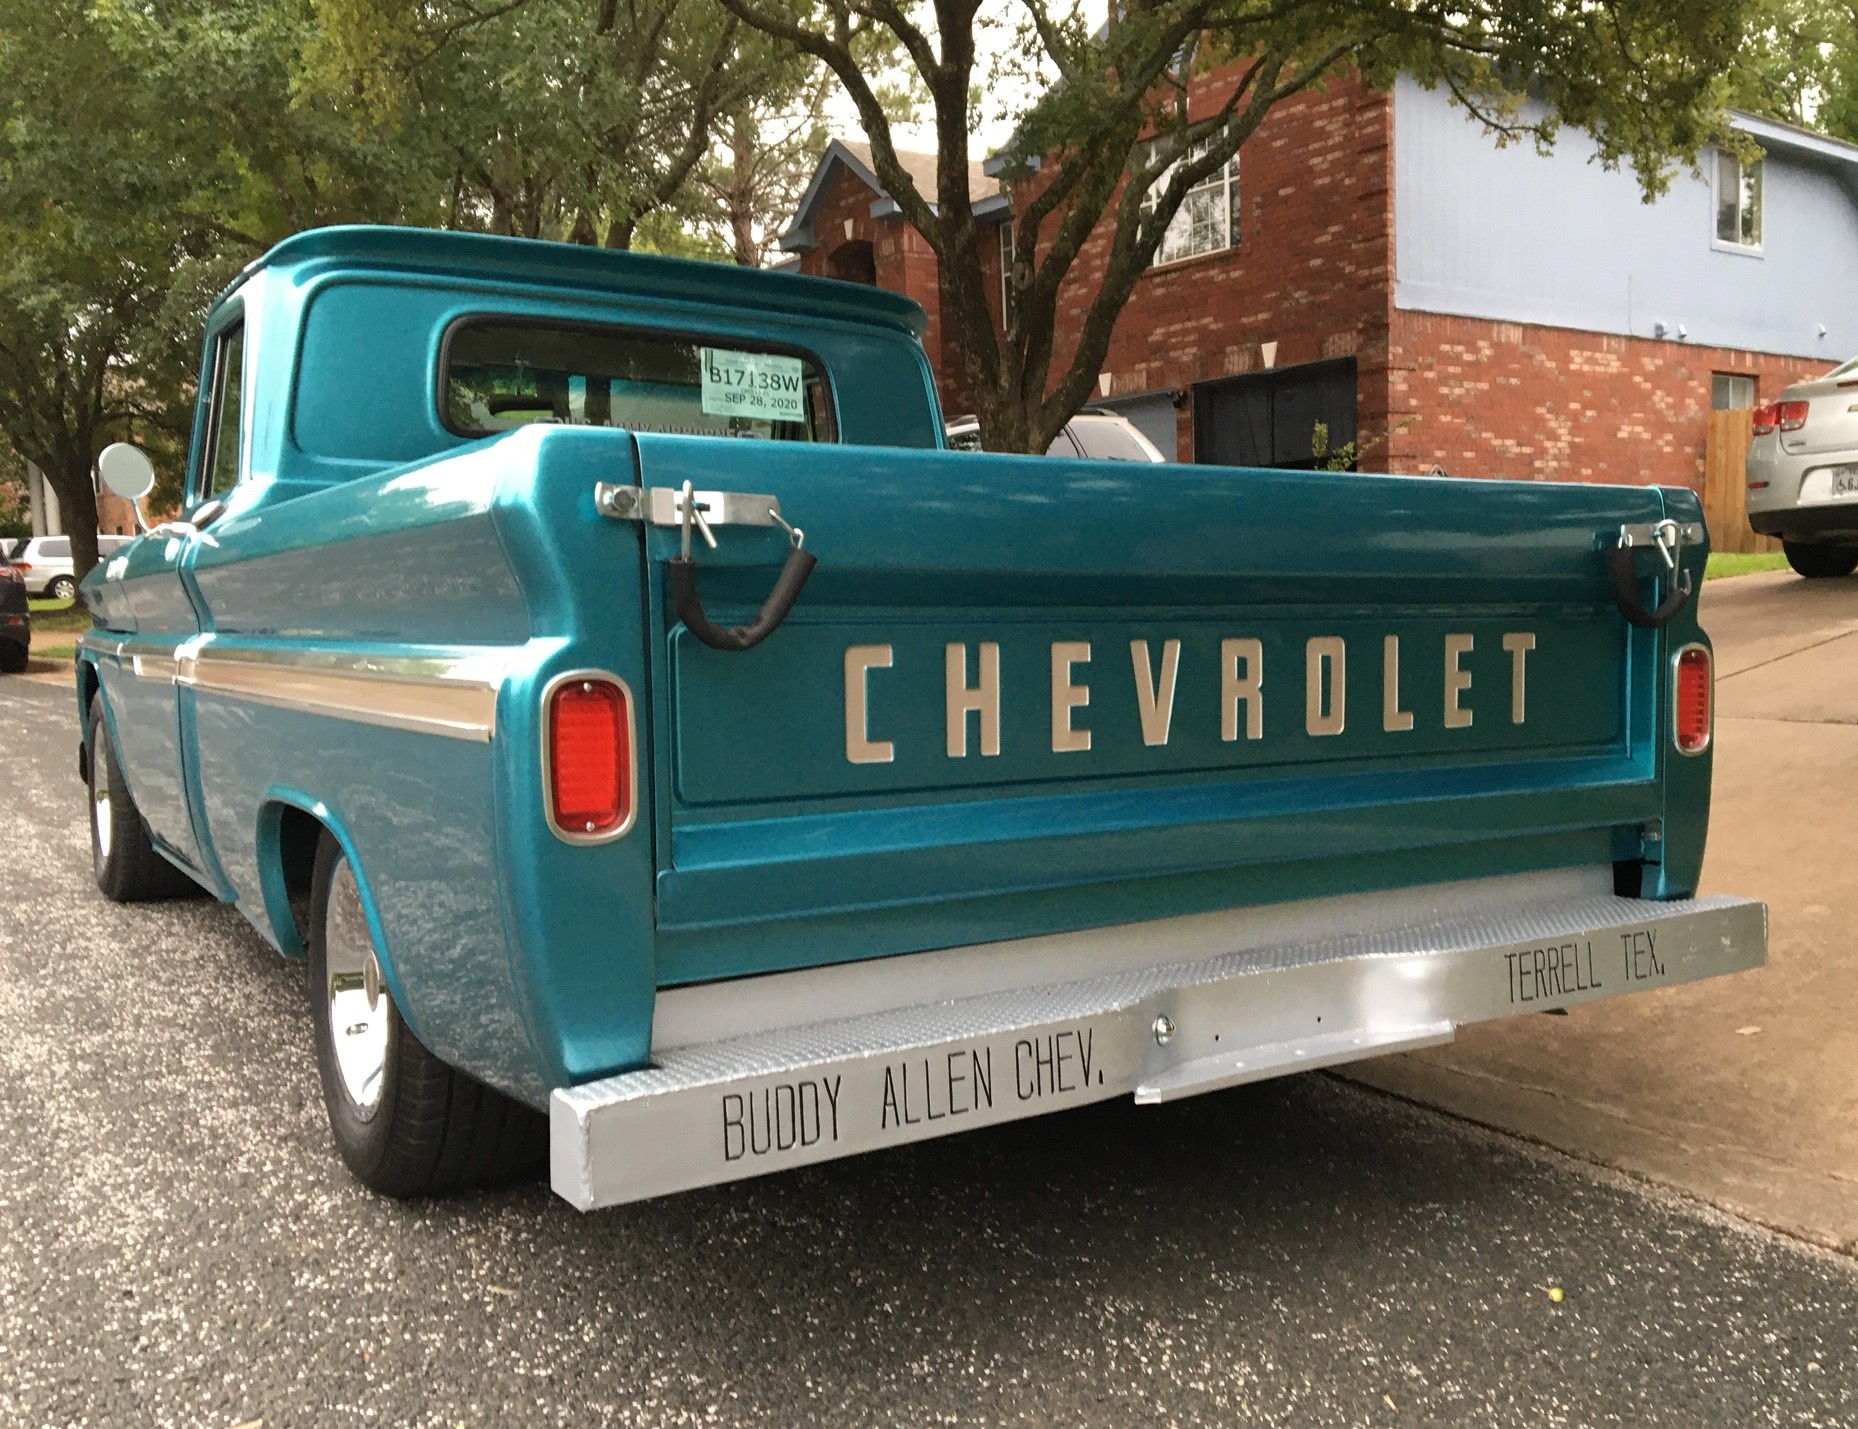 Buddy Allen Chevrolet - 1965 C10 at home - Full rear end